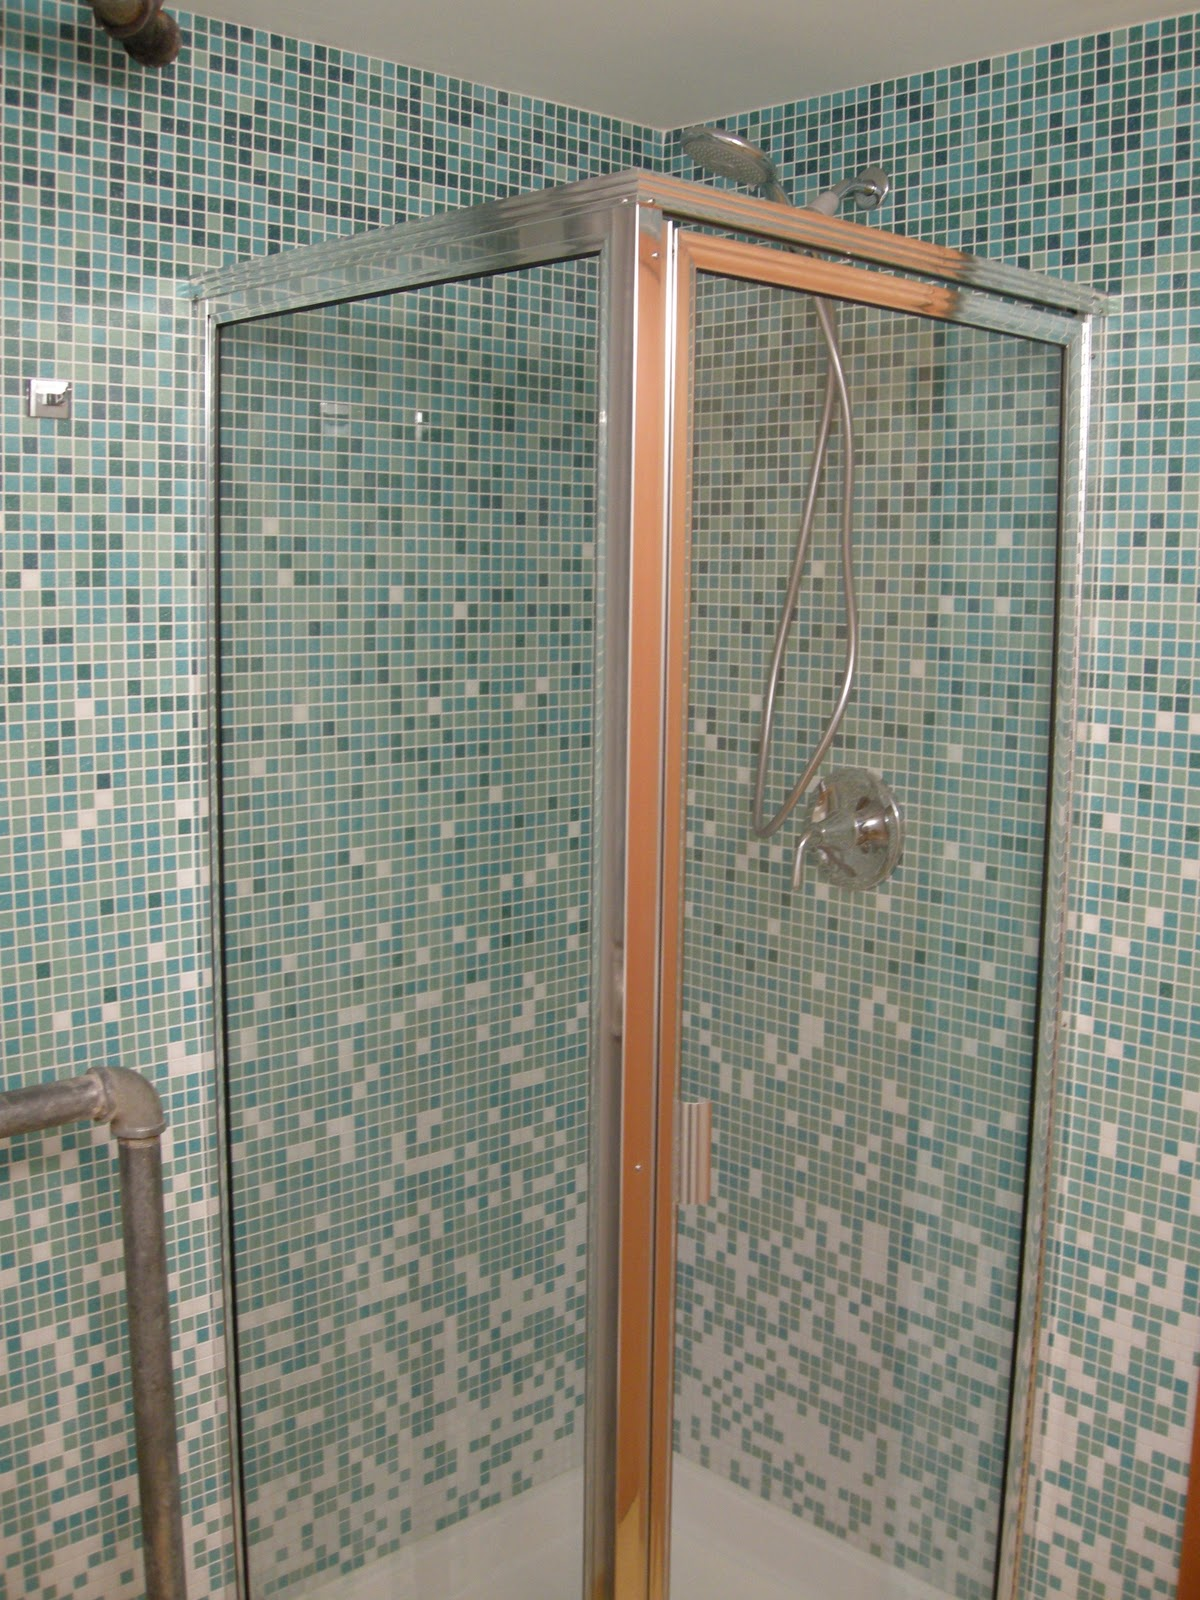 Glass shower walls what to wear with khaki pants - Shower stalls for small spaces gallery ...